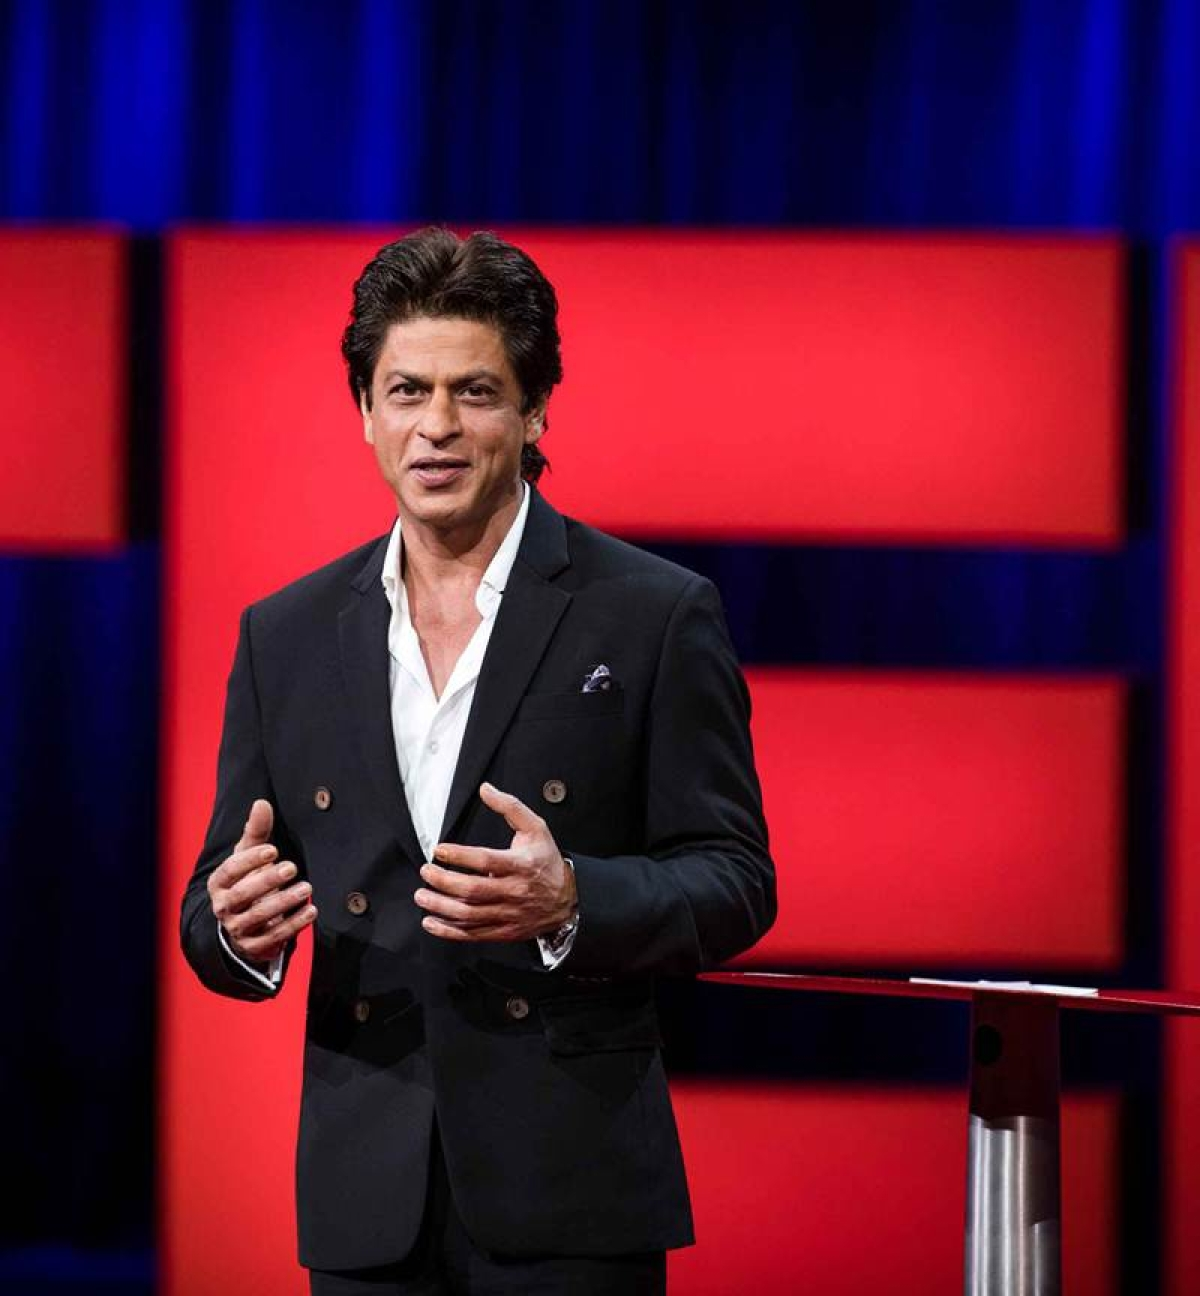 Appropriate hand gestures while talking are important, and Shah Rukh Khan does it right